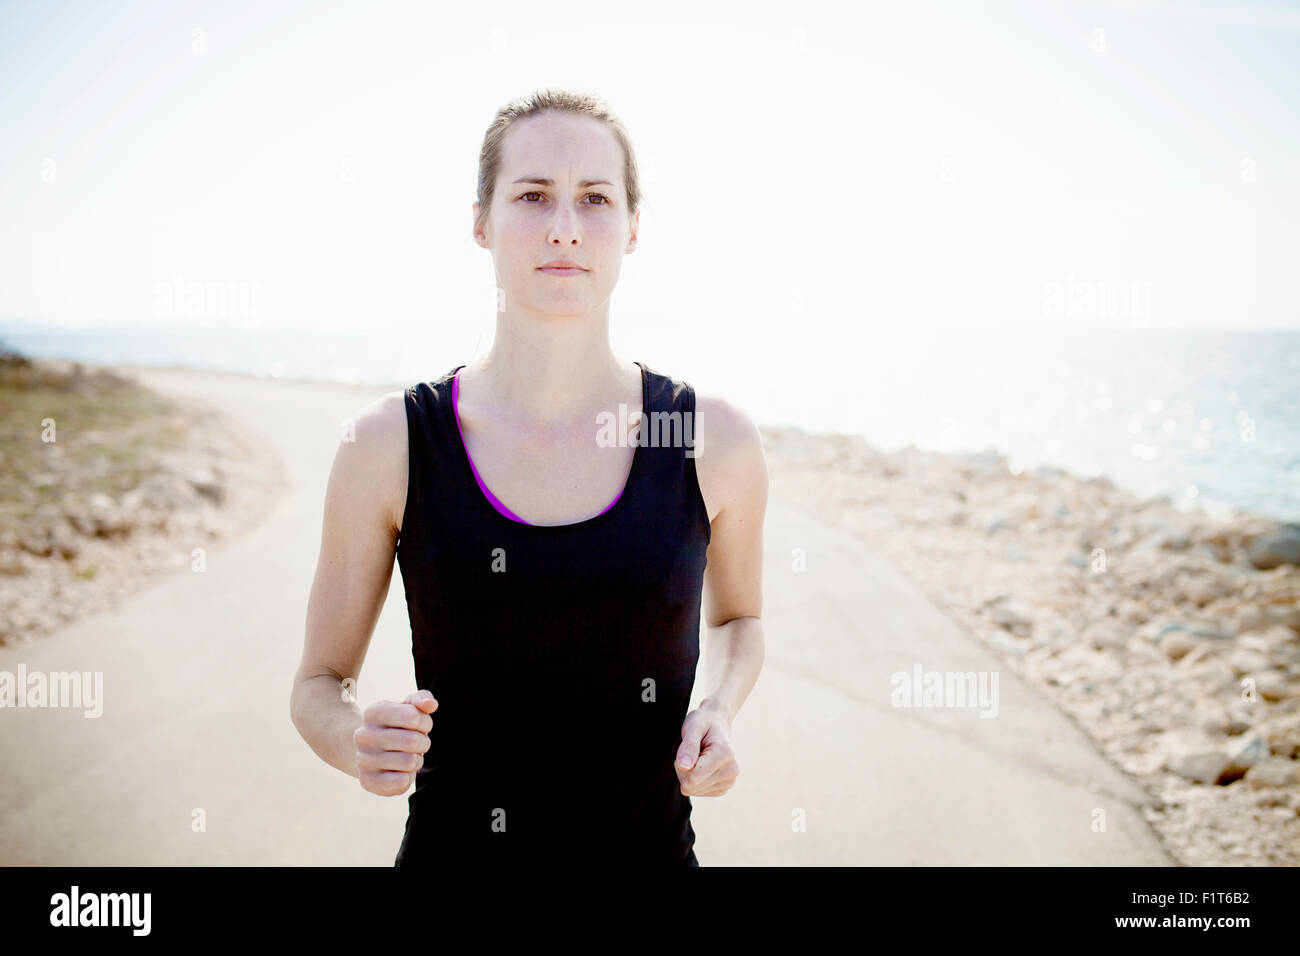 Woman in sports clothing  jogging on waterfront path Stock Photo